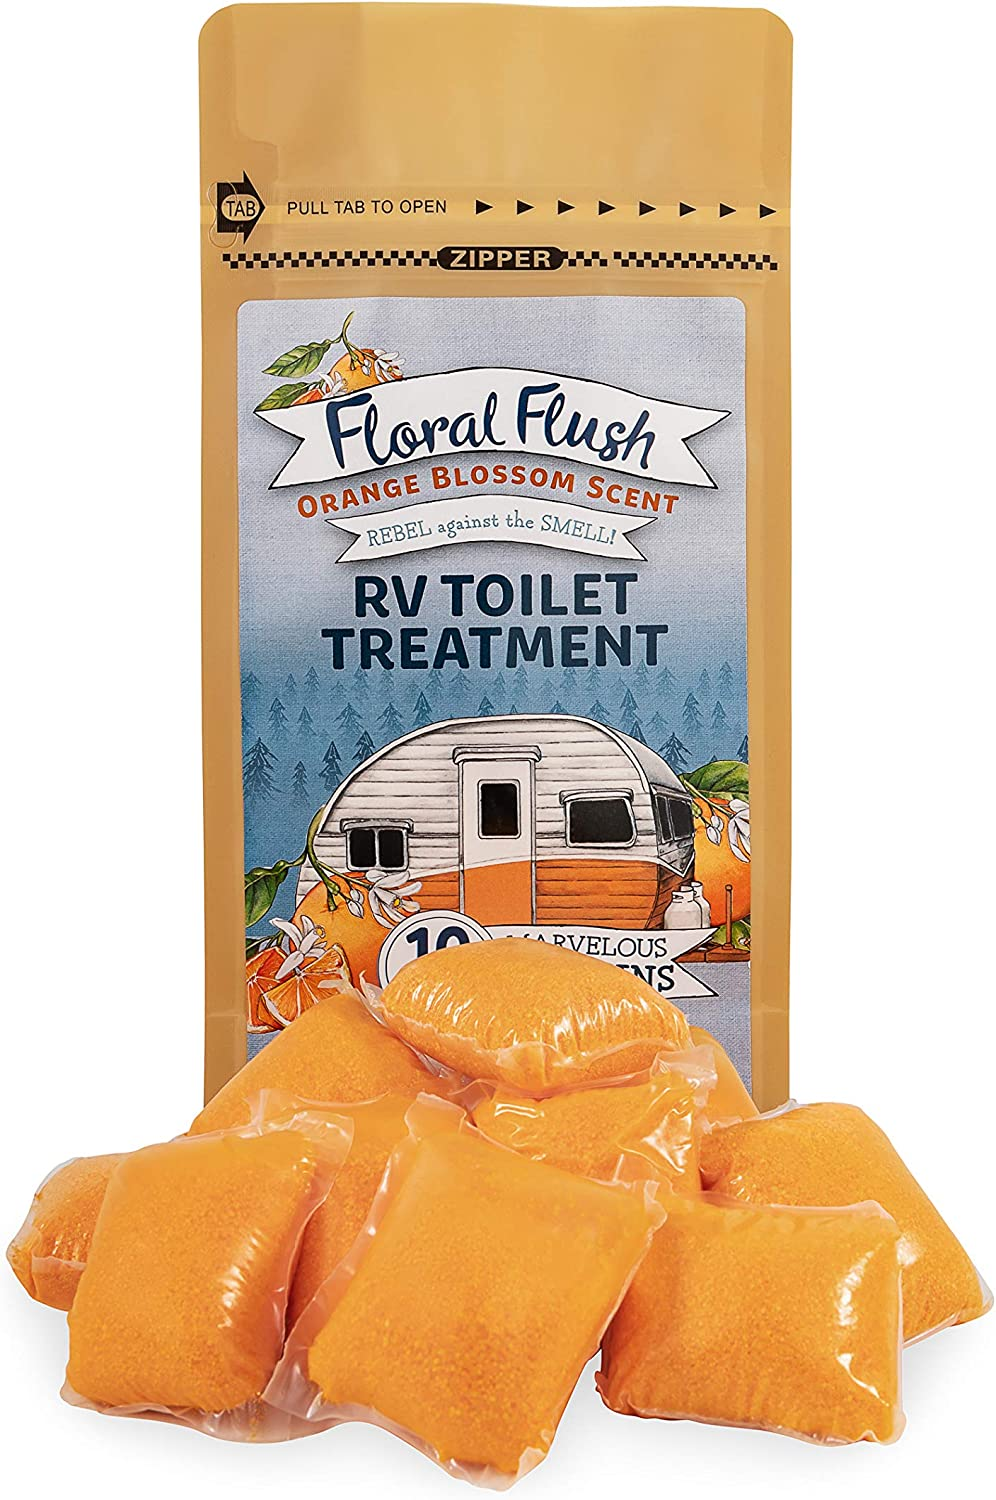 Amazon Com Camco 41491 Floral Flush Rv Toilet Treatment Drop Ins Orange Blossom Scent Eliminates Odors And Breaks Down Waste One Drop In Treats Up To A 40 Gallon Tank 10 Drop Ins Per